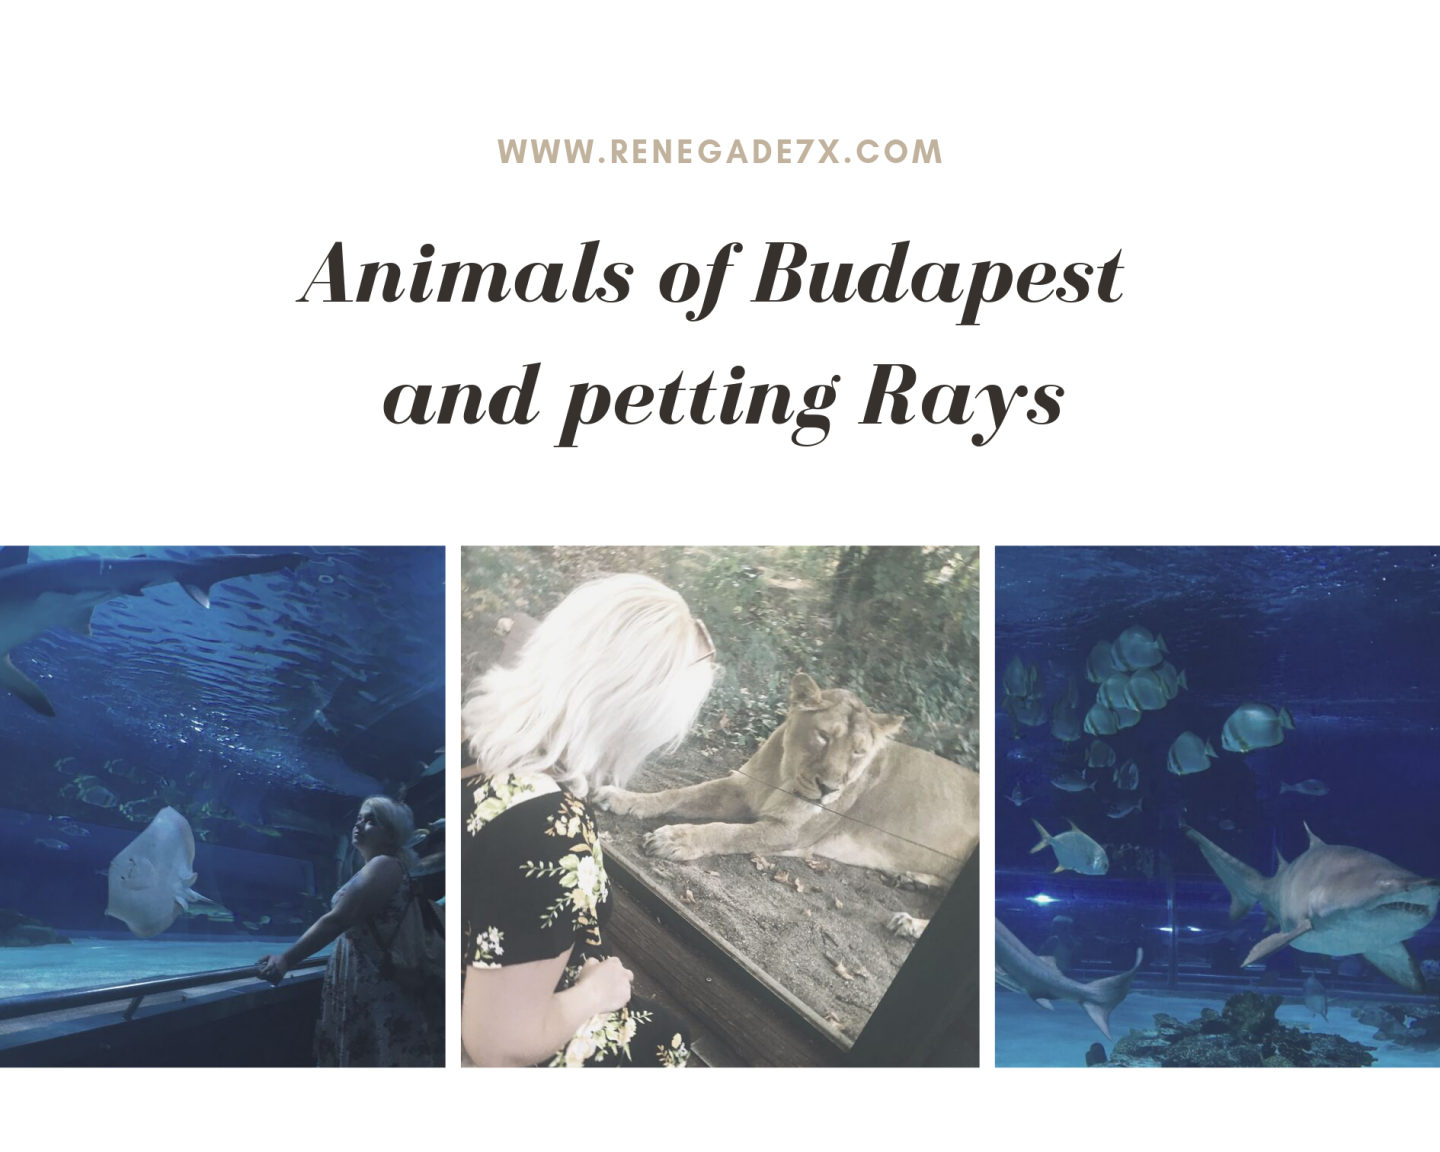 Animals of Budapest and petting Rays